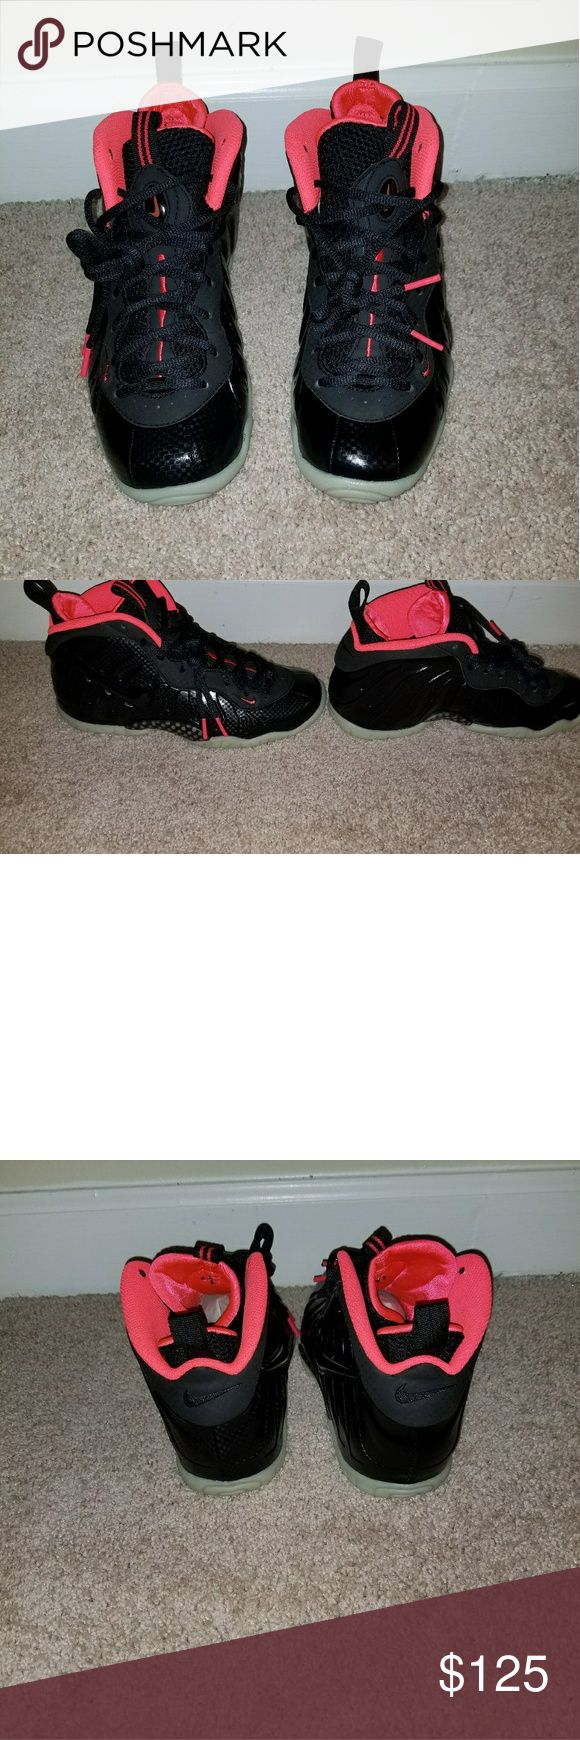 "NIke Little Posite (Foamposite) Pro (GS) - ""Yeezy"" VNDS pair of100% Authentic, Nike Little Posite Pro's in the HYPED ""Yeezy"" colorway. Shoes are virtually brand new, as they were only worn maybe 2 times for less than and hour each time. There are virtually no signs of wear as the posite material in blemish free, and the soles are very clean. I have these shoes listed for a steal price, but all REASONABLE offers will be considered. Nike Shoes Sneakers"